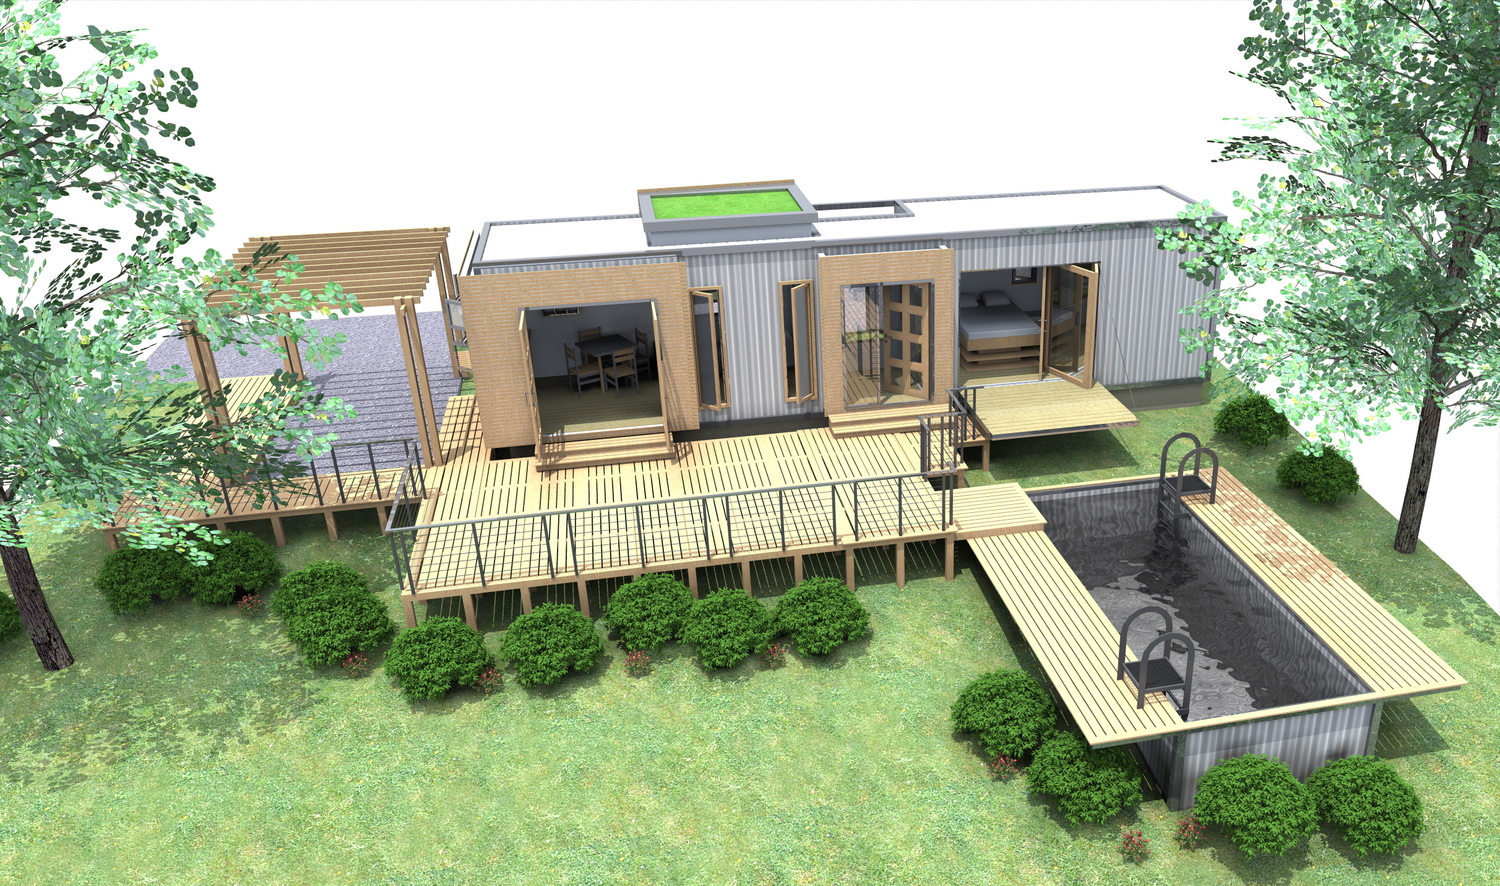 Shipping container homes june 2013 for Design shipping container home online